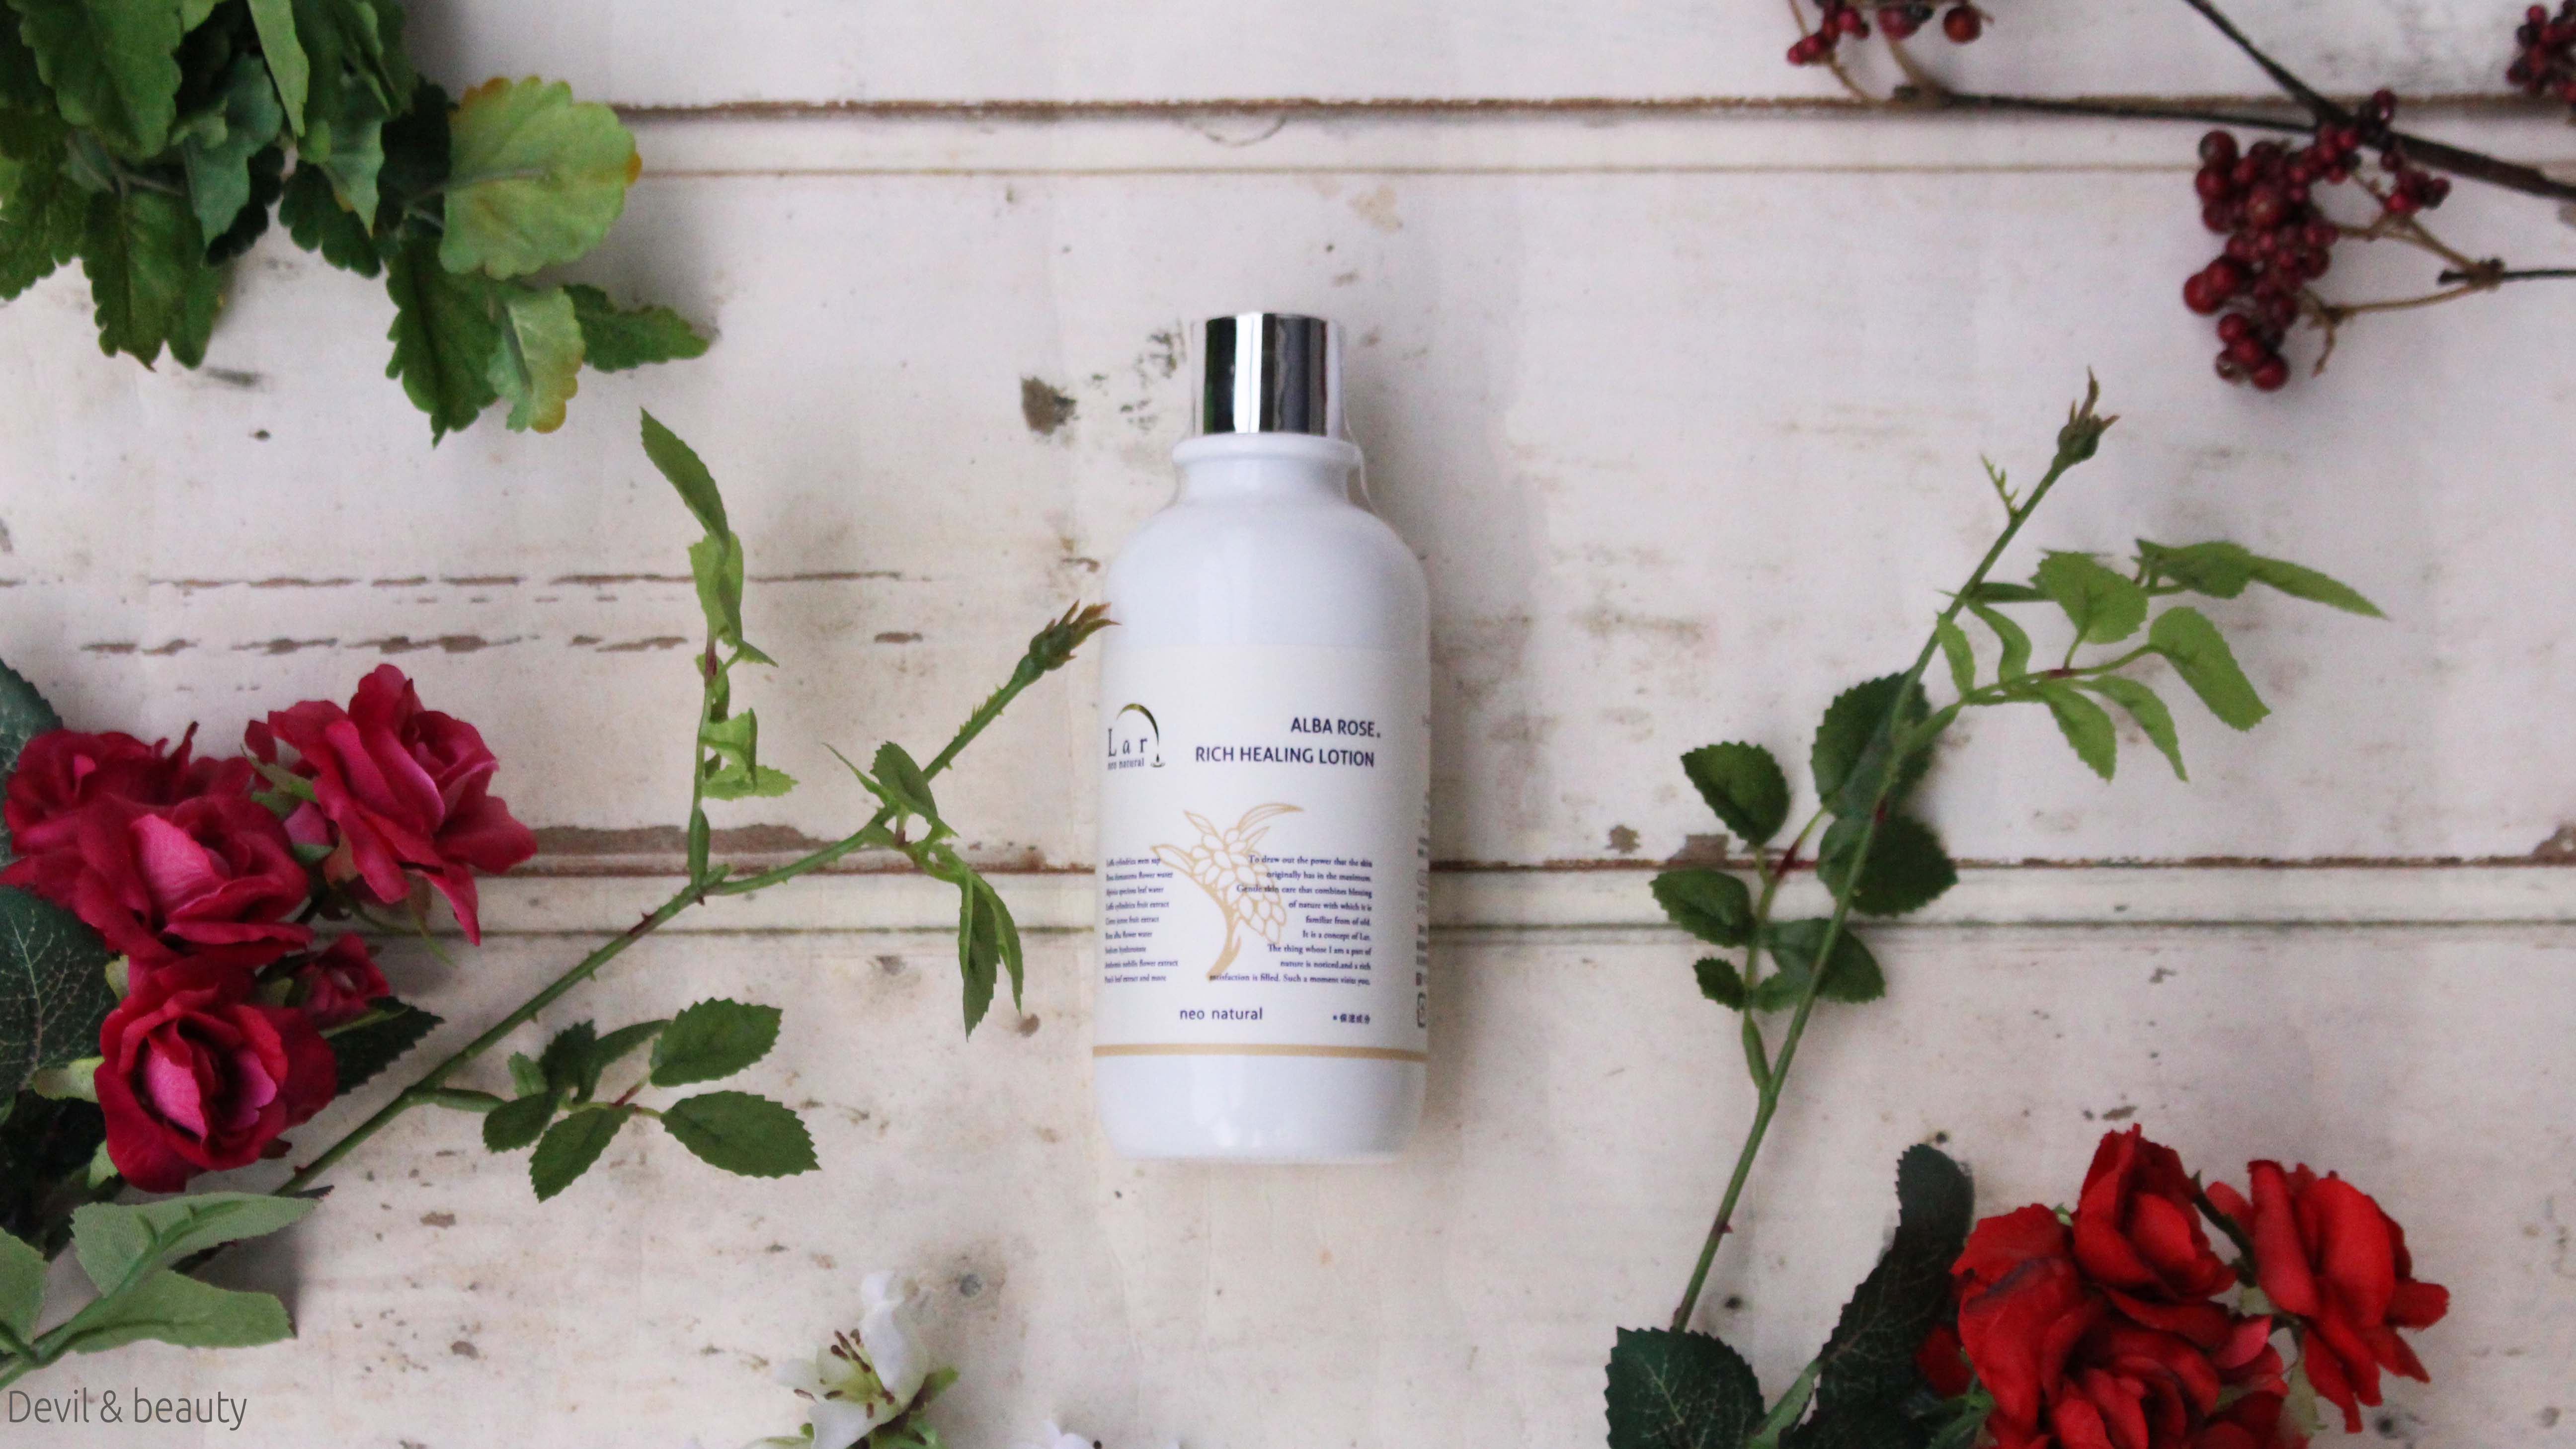 lar-neo-natural-rich-healing-lotion6 - image